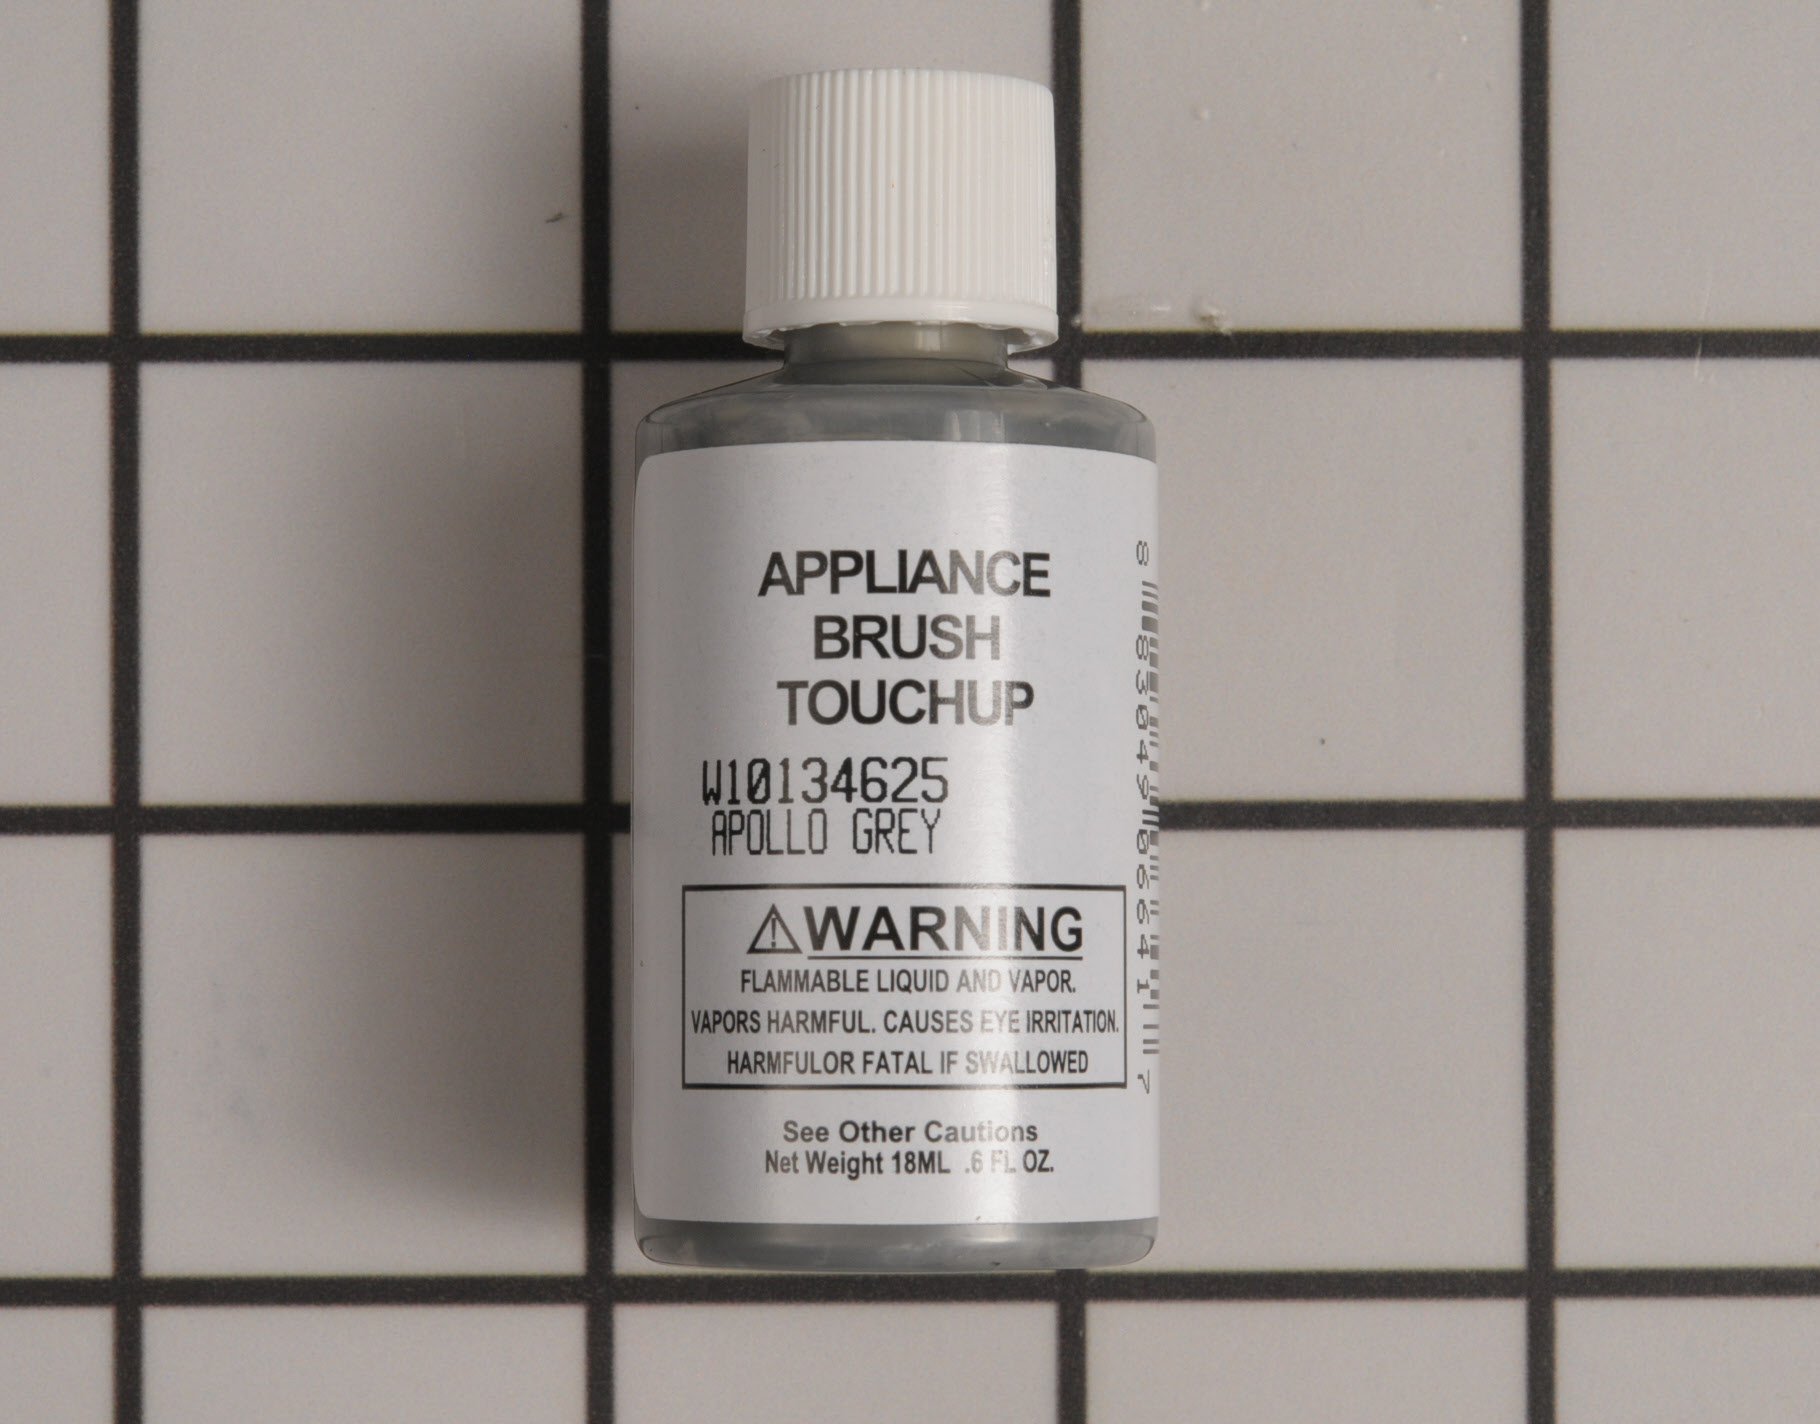 Whirlpool Freezer Part # W10134625 - Touch-Up Paint